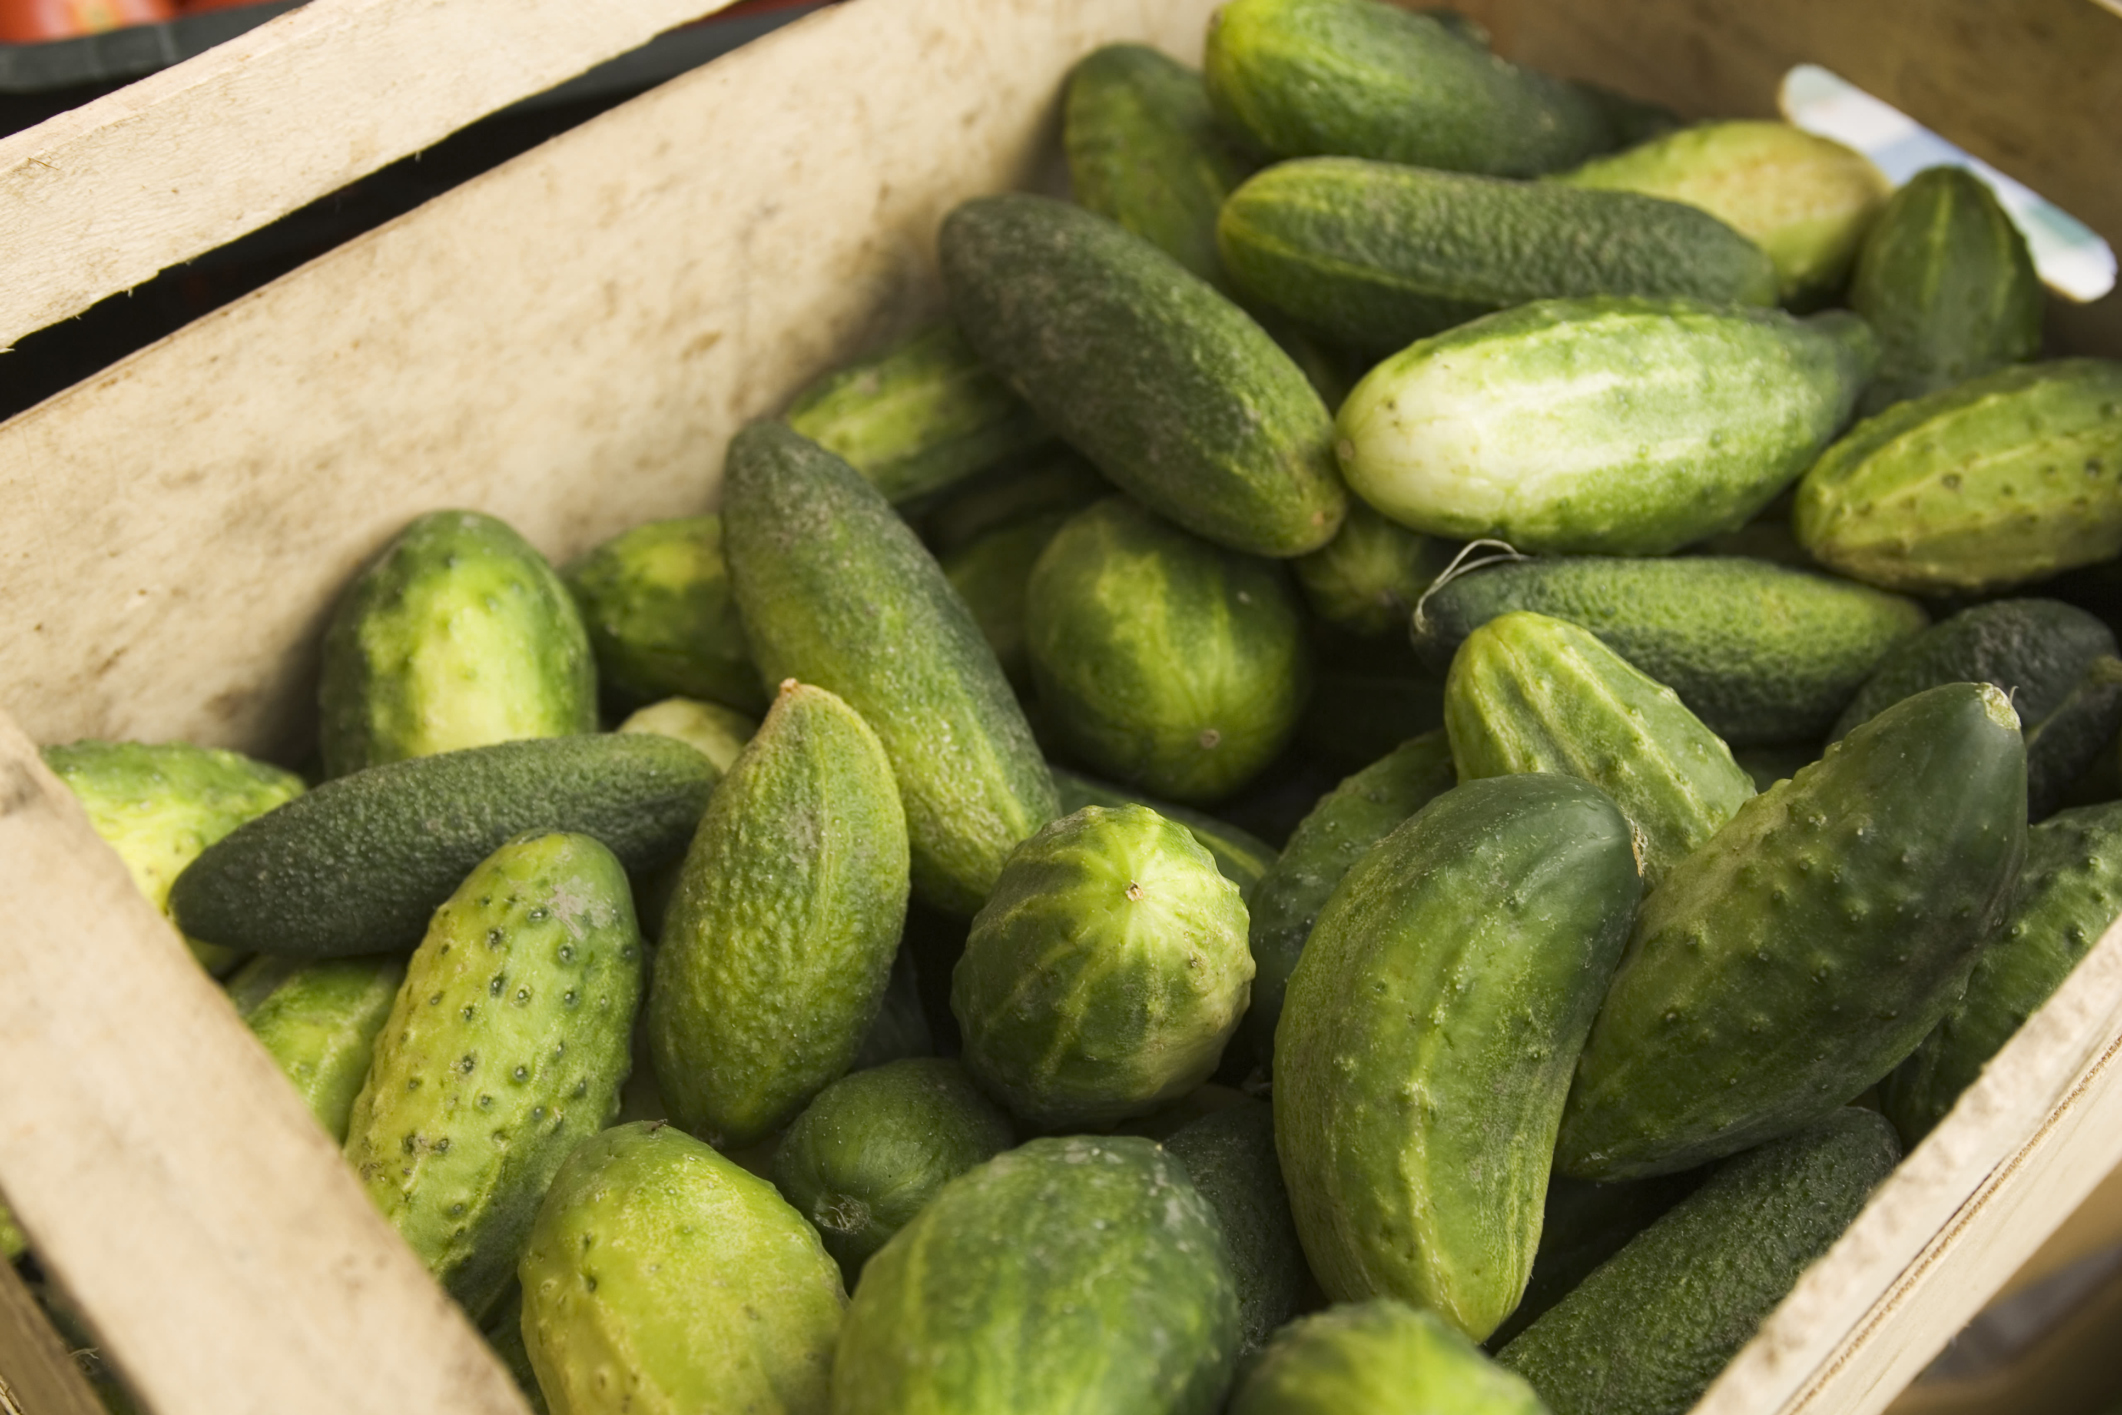 Cucumber diet: reviews, effects, uses